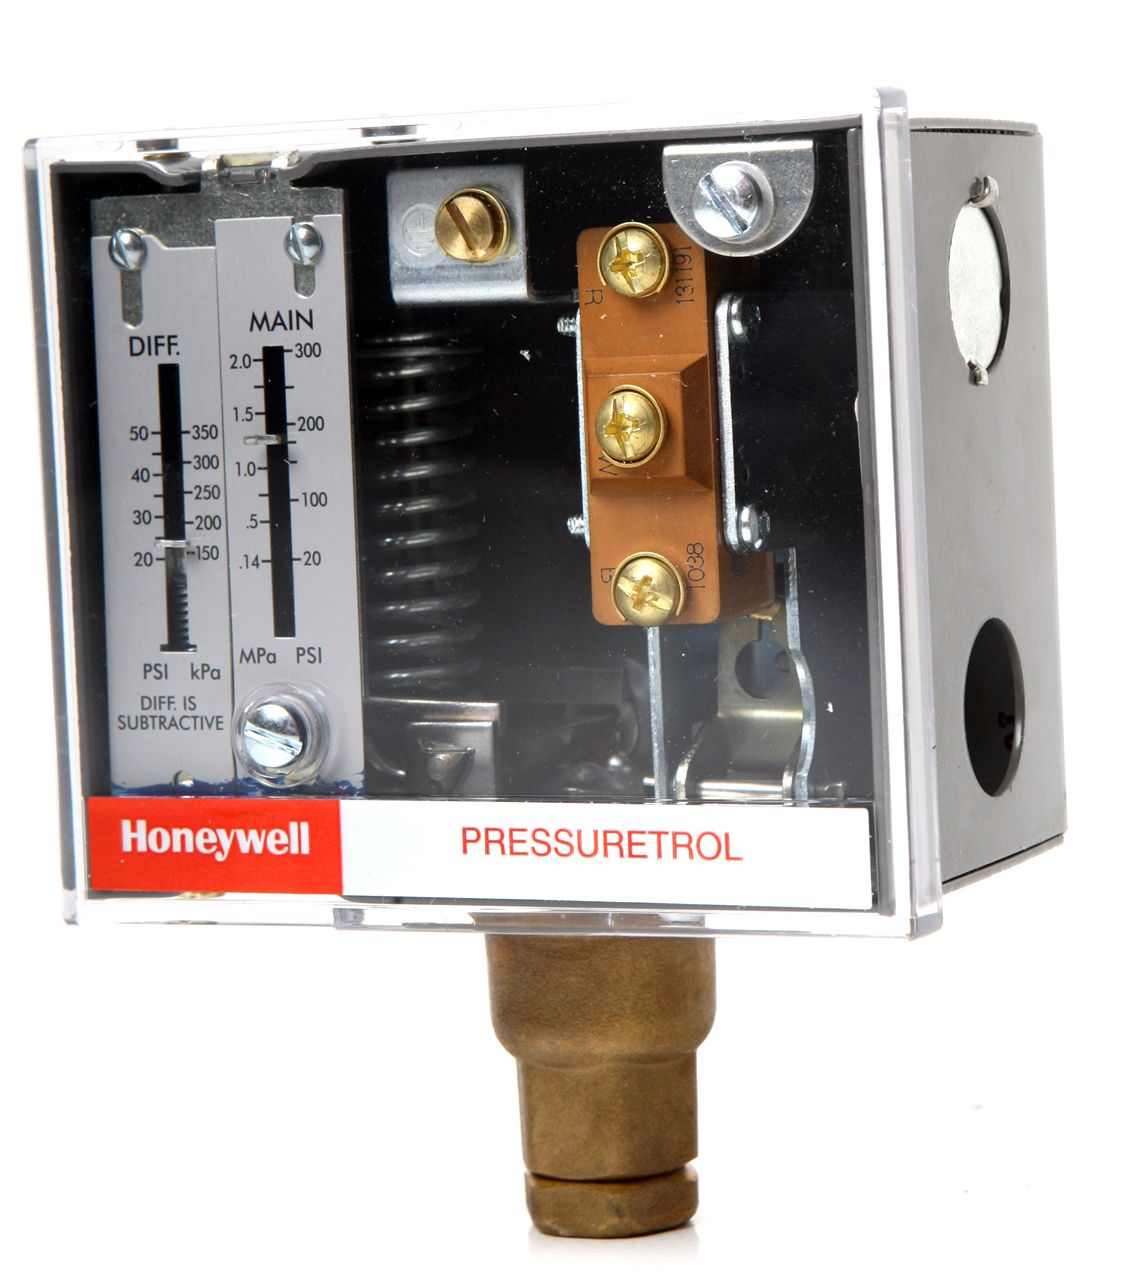 Honeywell L F moreover Sanita Img in addition Px Float Switch On also Part Thumb besides Water Level Controller. on water level controller circuit